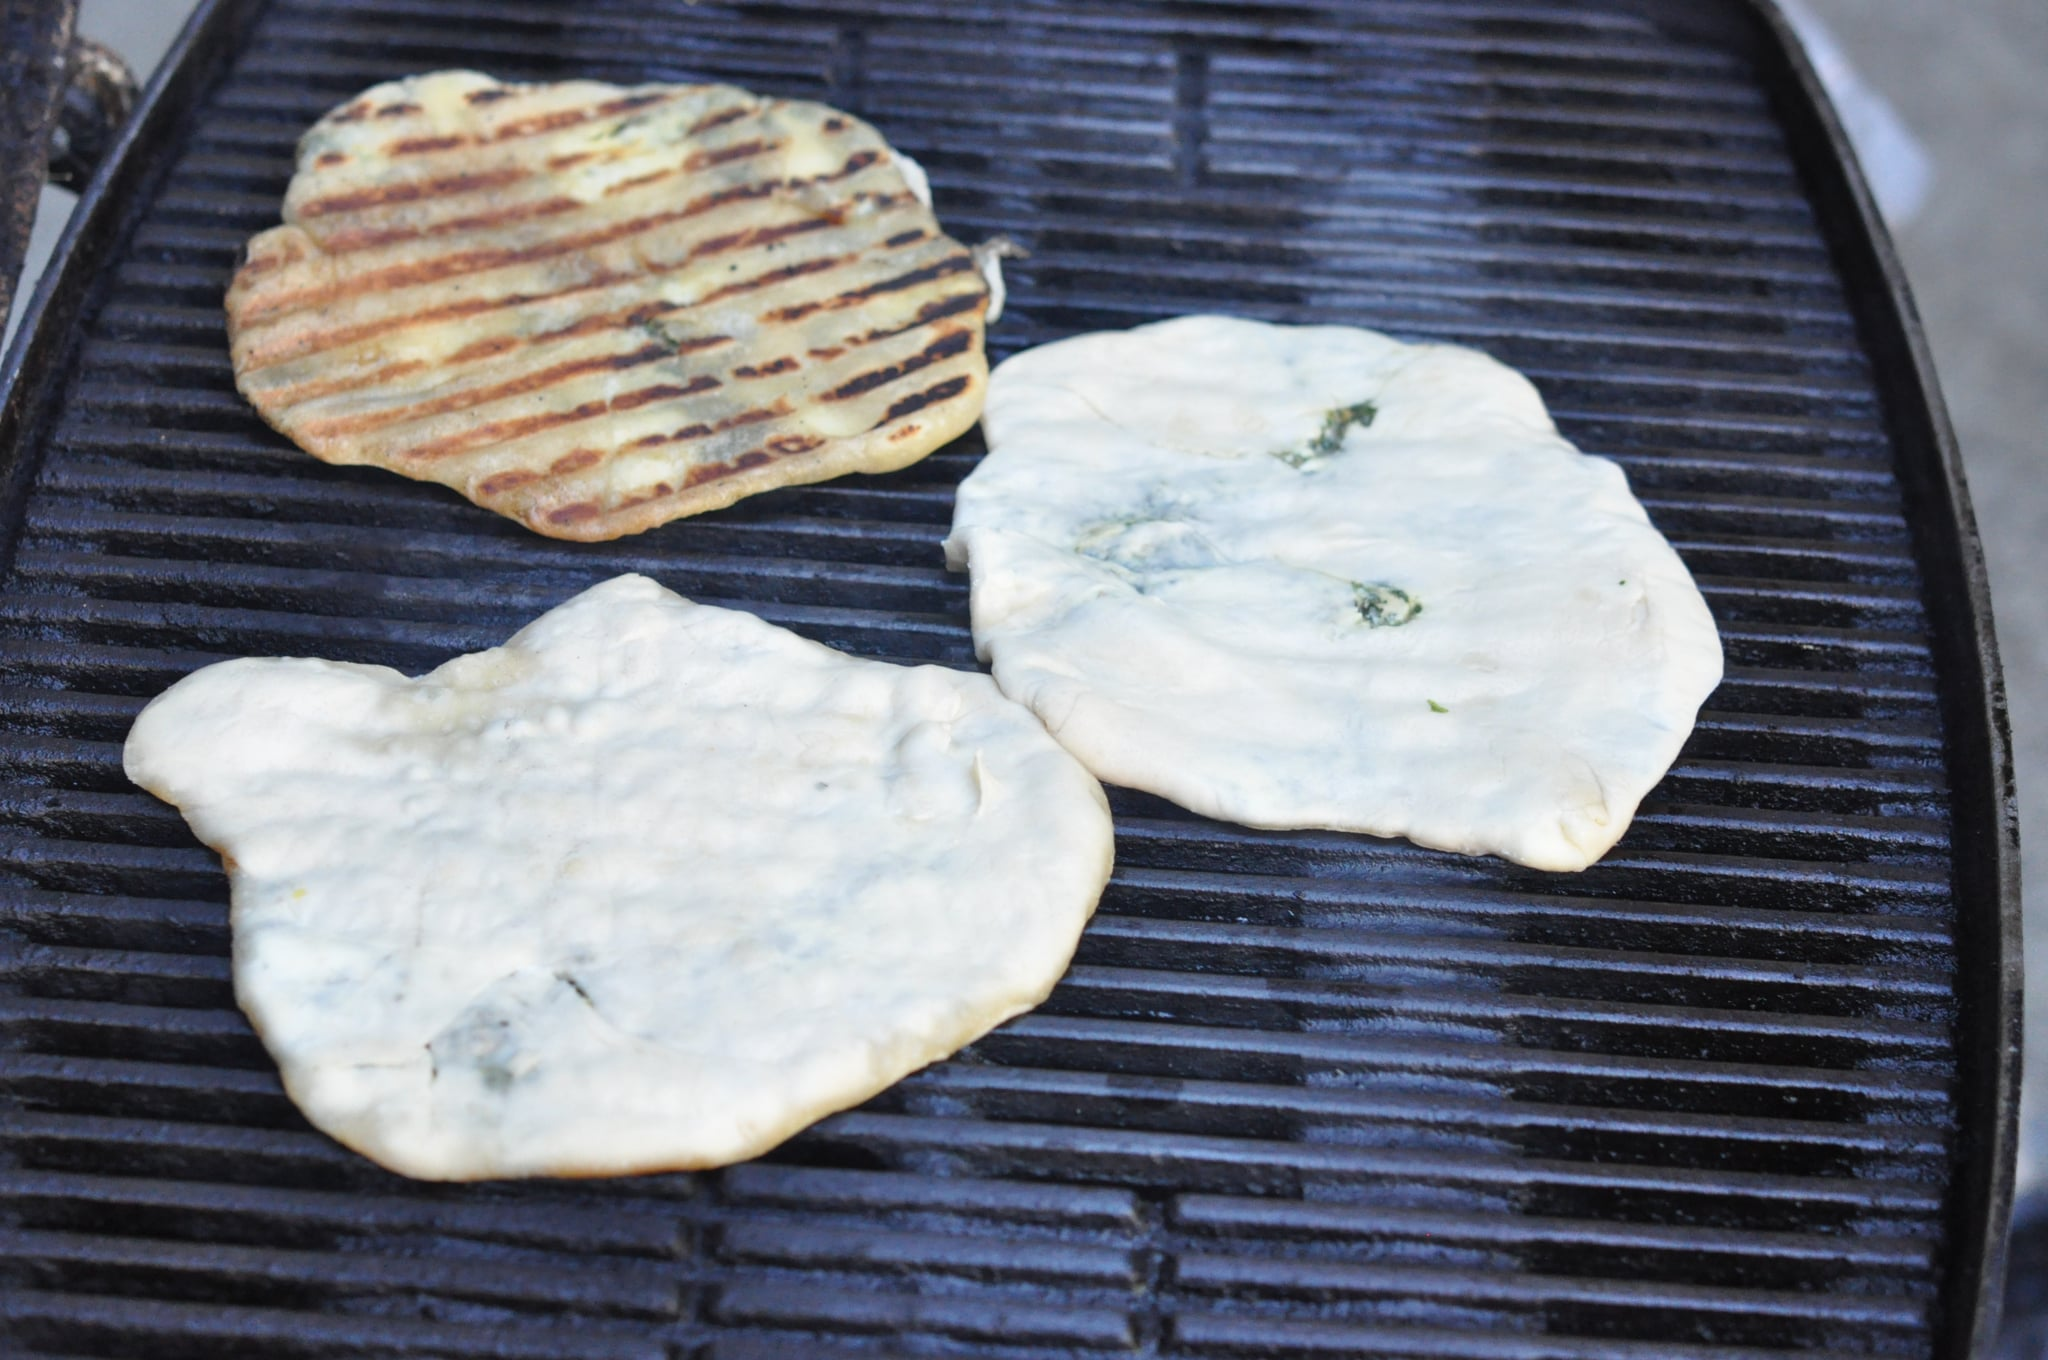 BBQ Grilled Breads